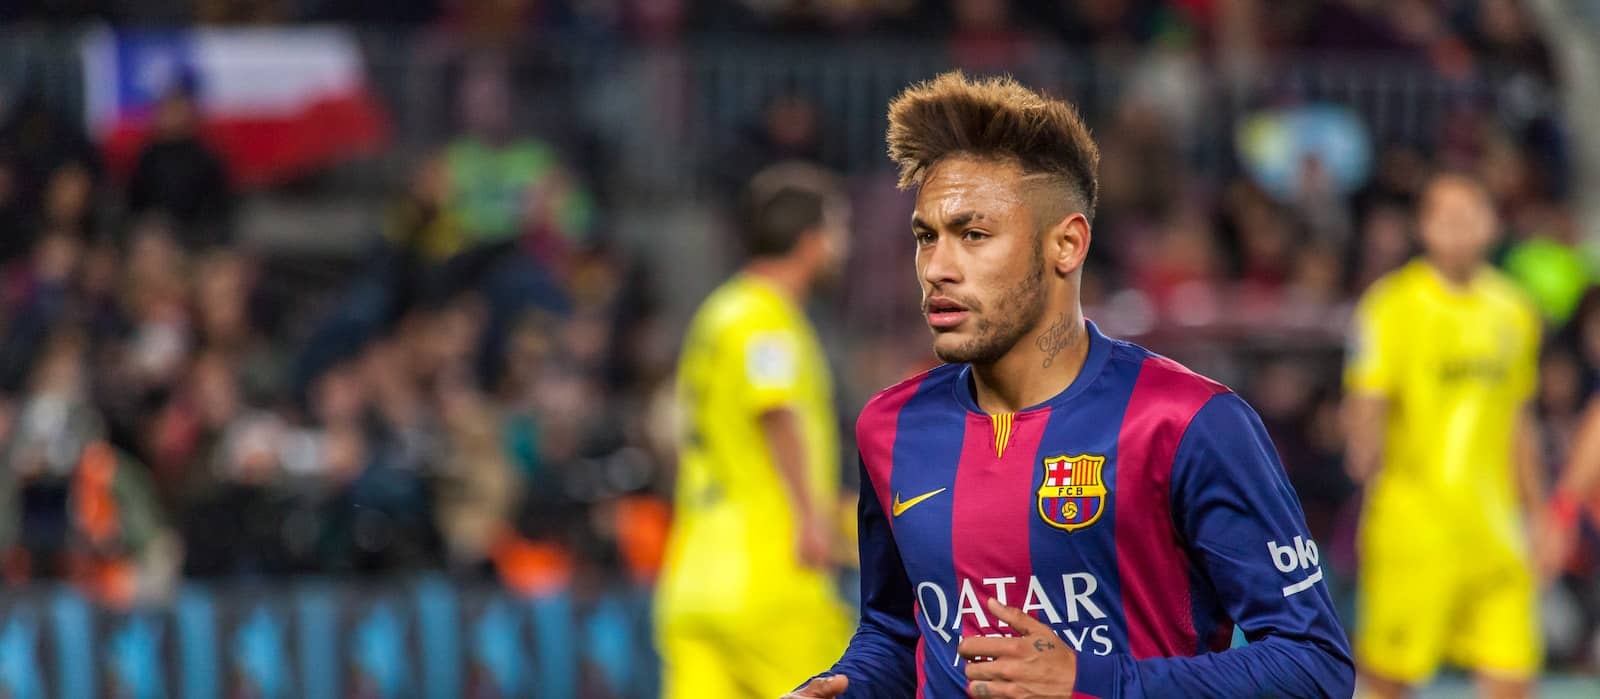 Jose Mourinho reacts to Neymar's world record move to Paris Saint Germain